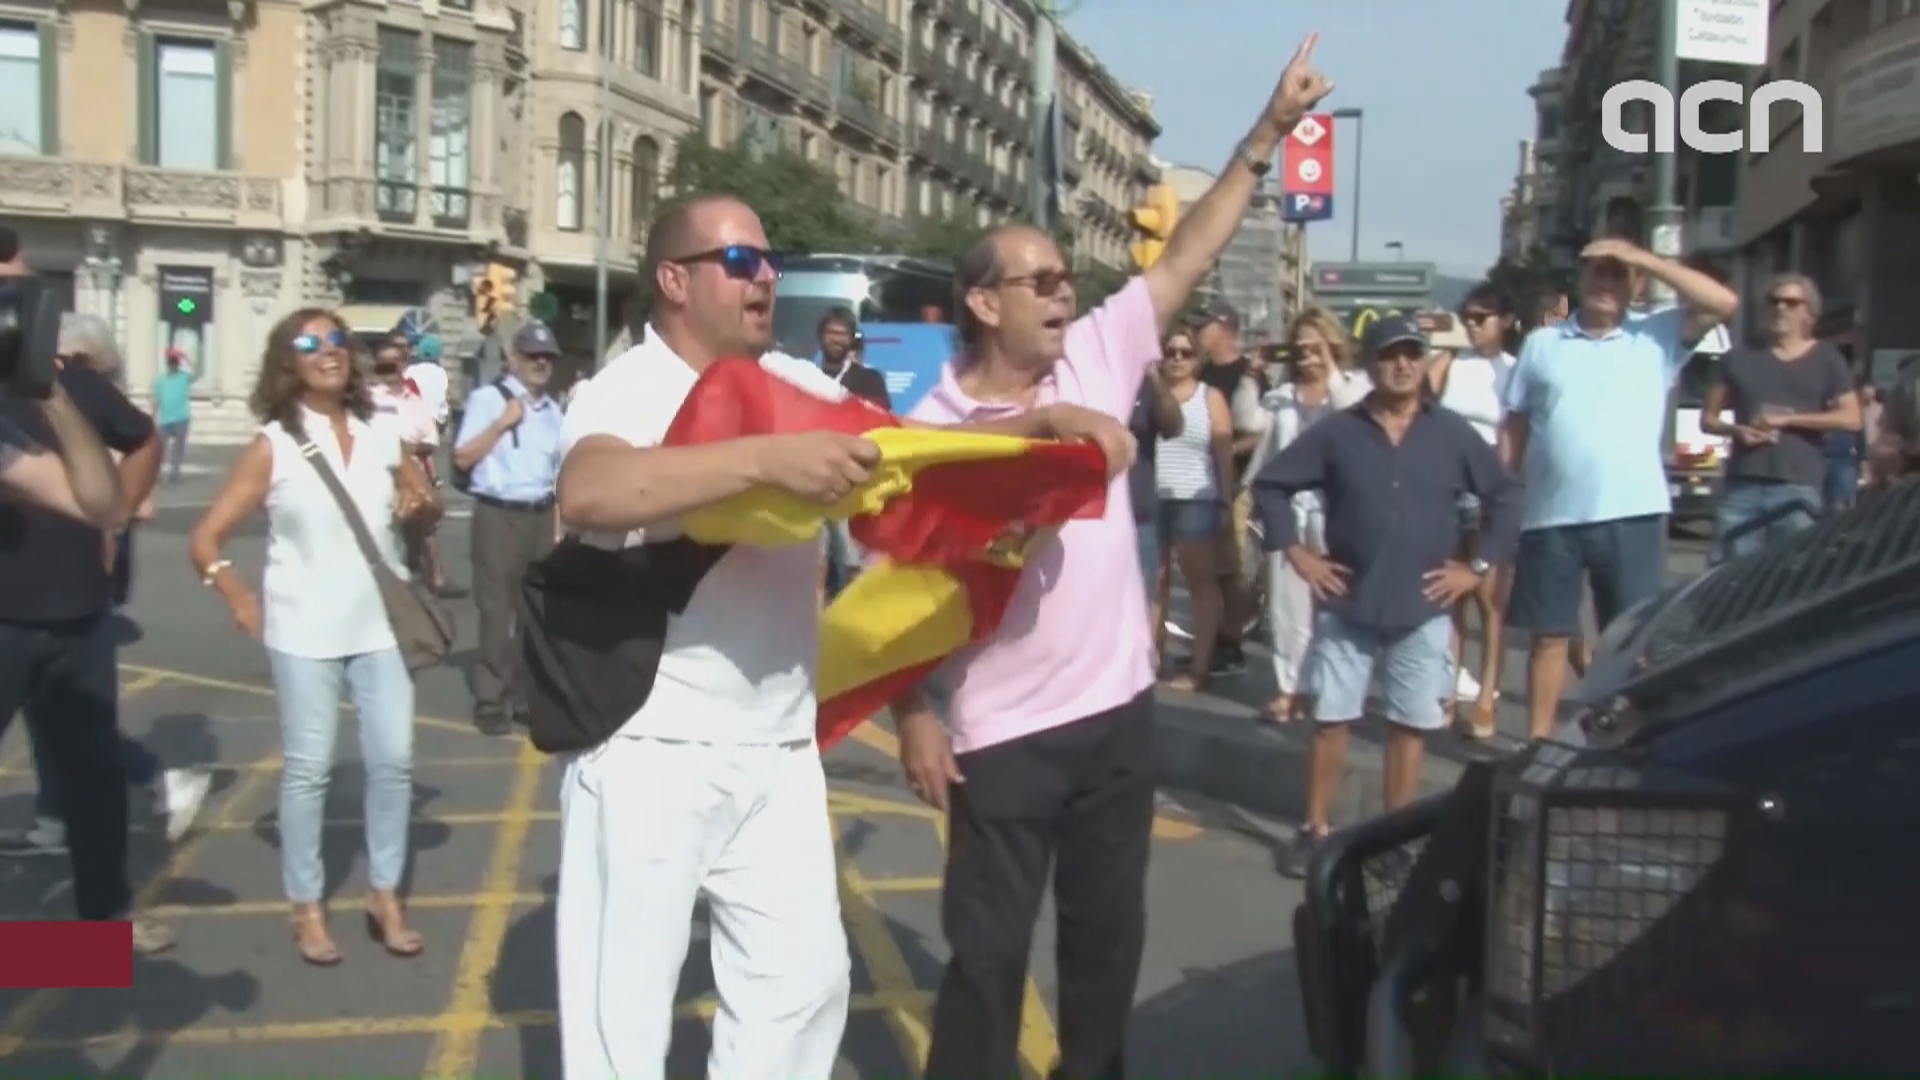 Tension between unionist and pro-independence activists